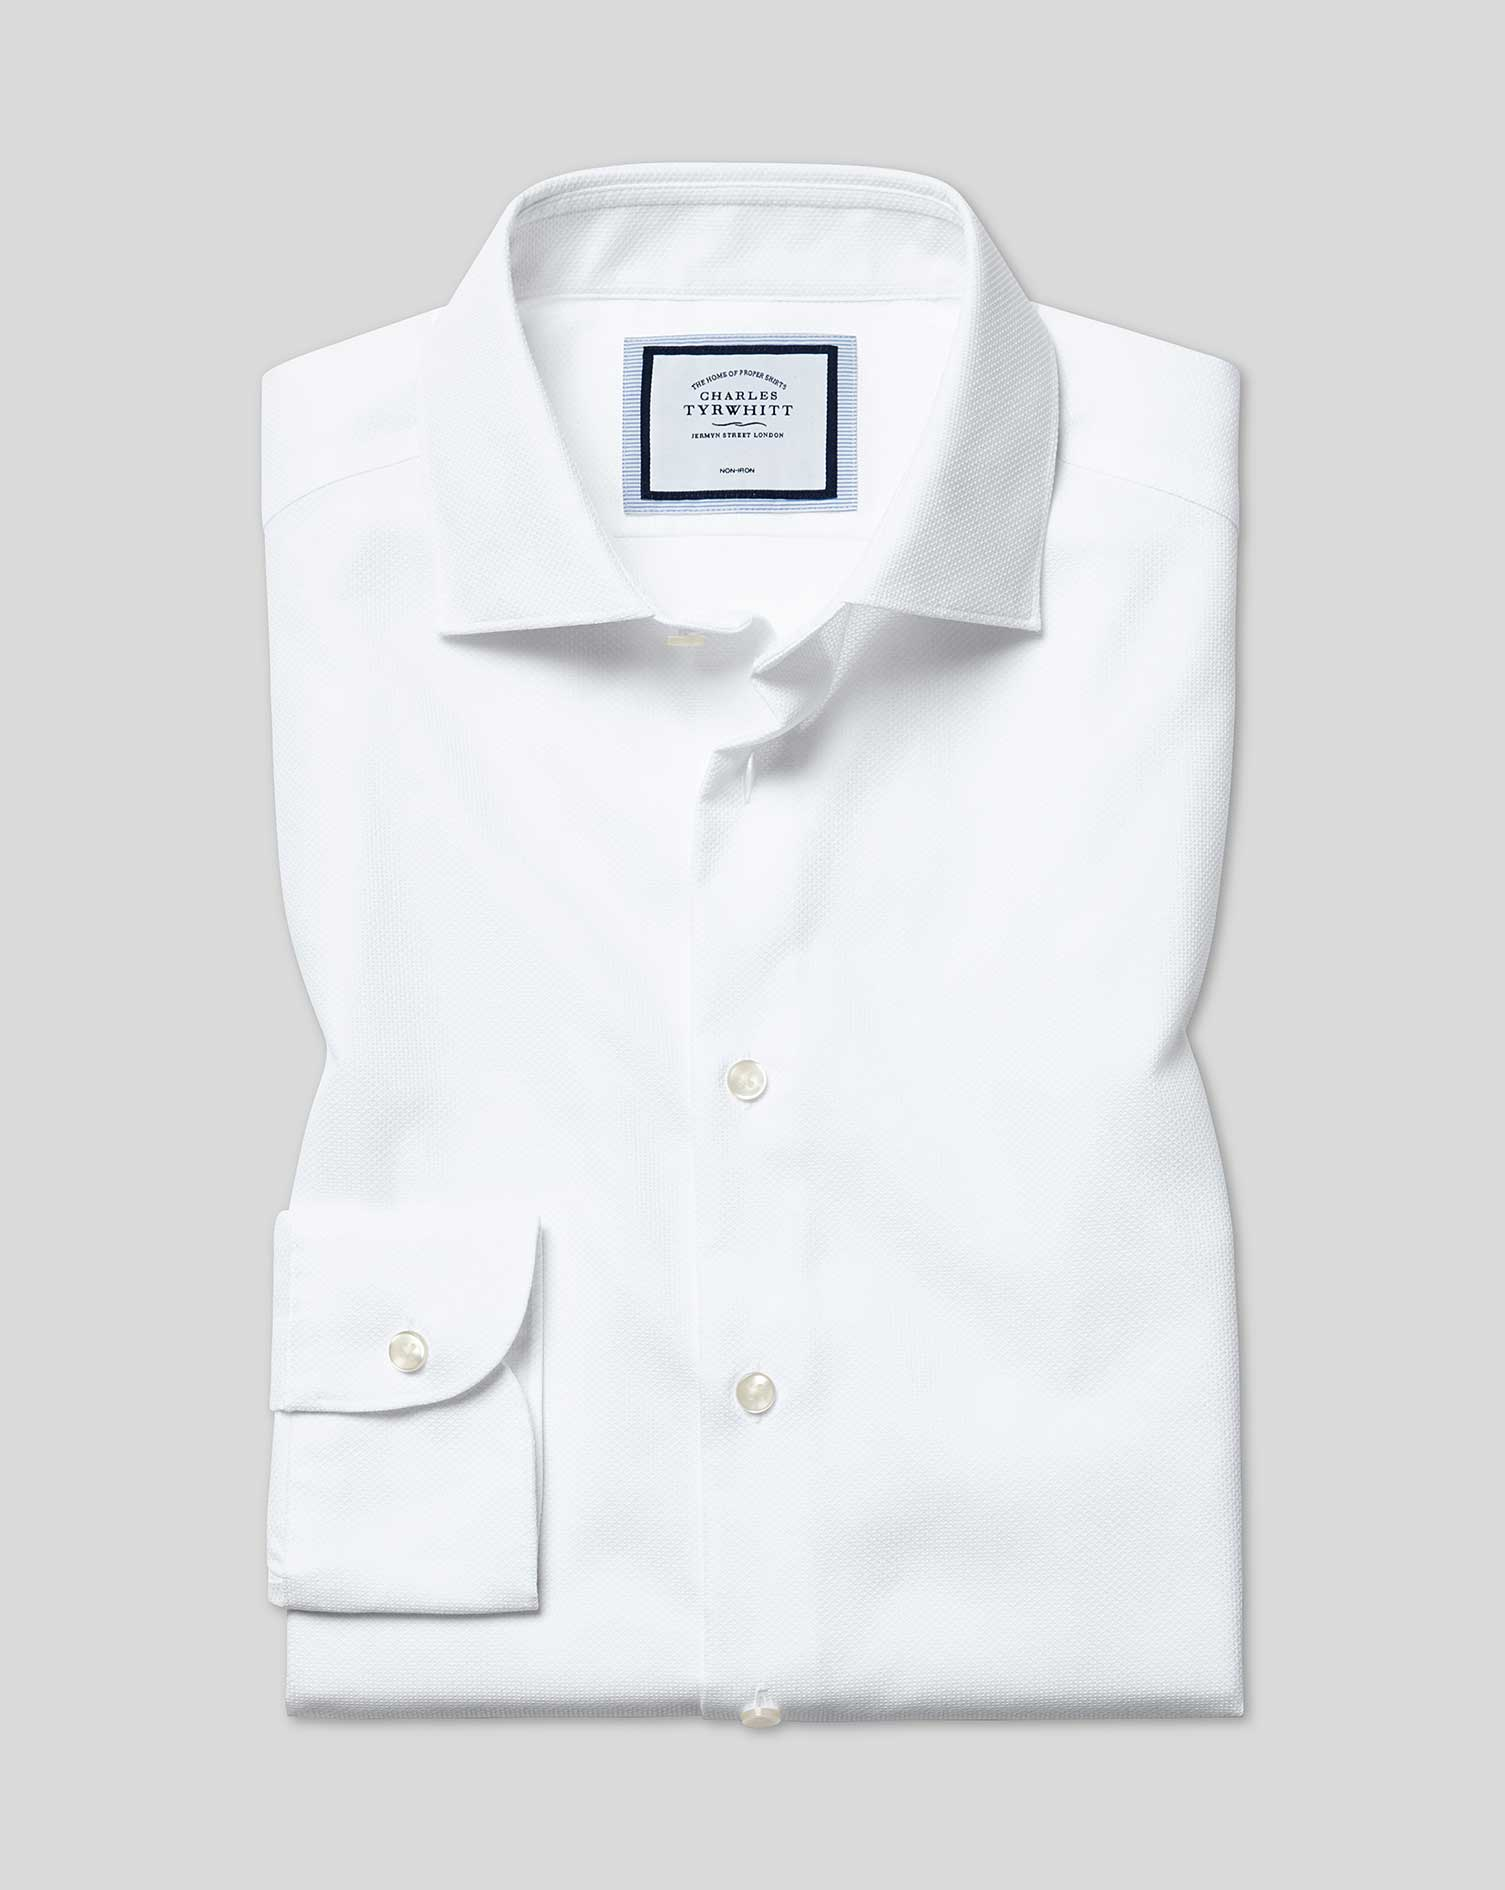 Cotton Classic Fit Non-Iron Natural Stretch White Shirt